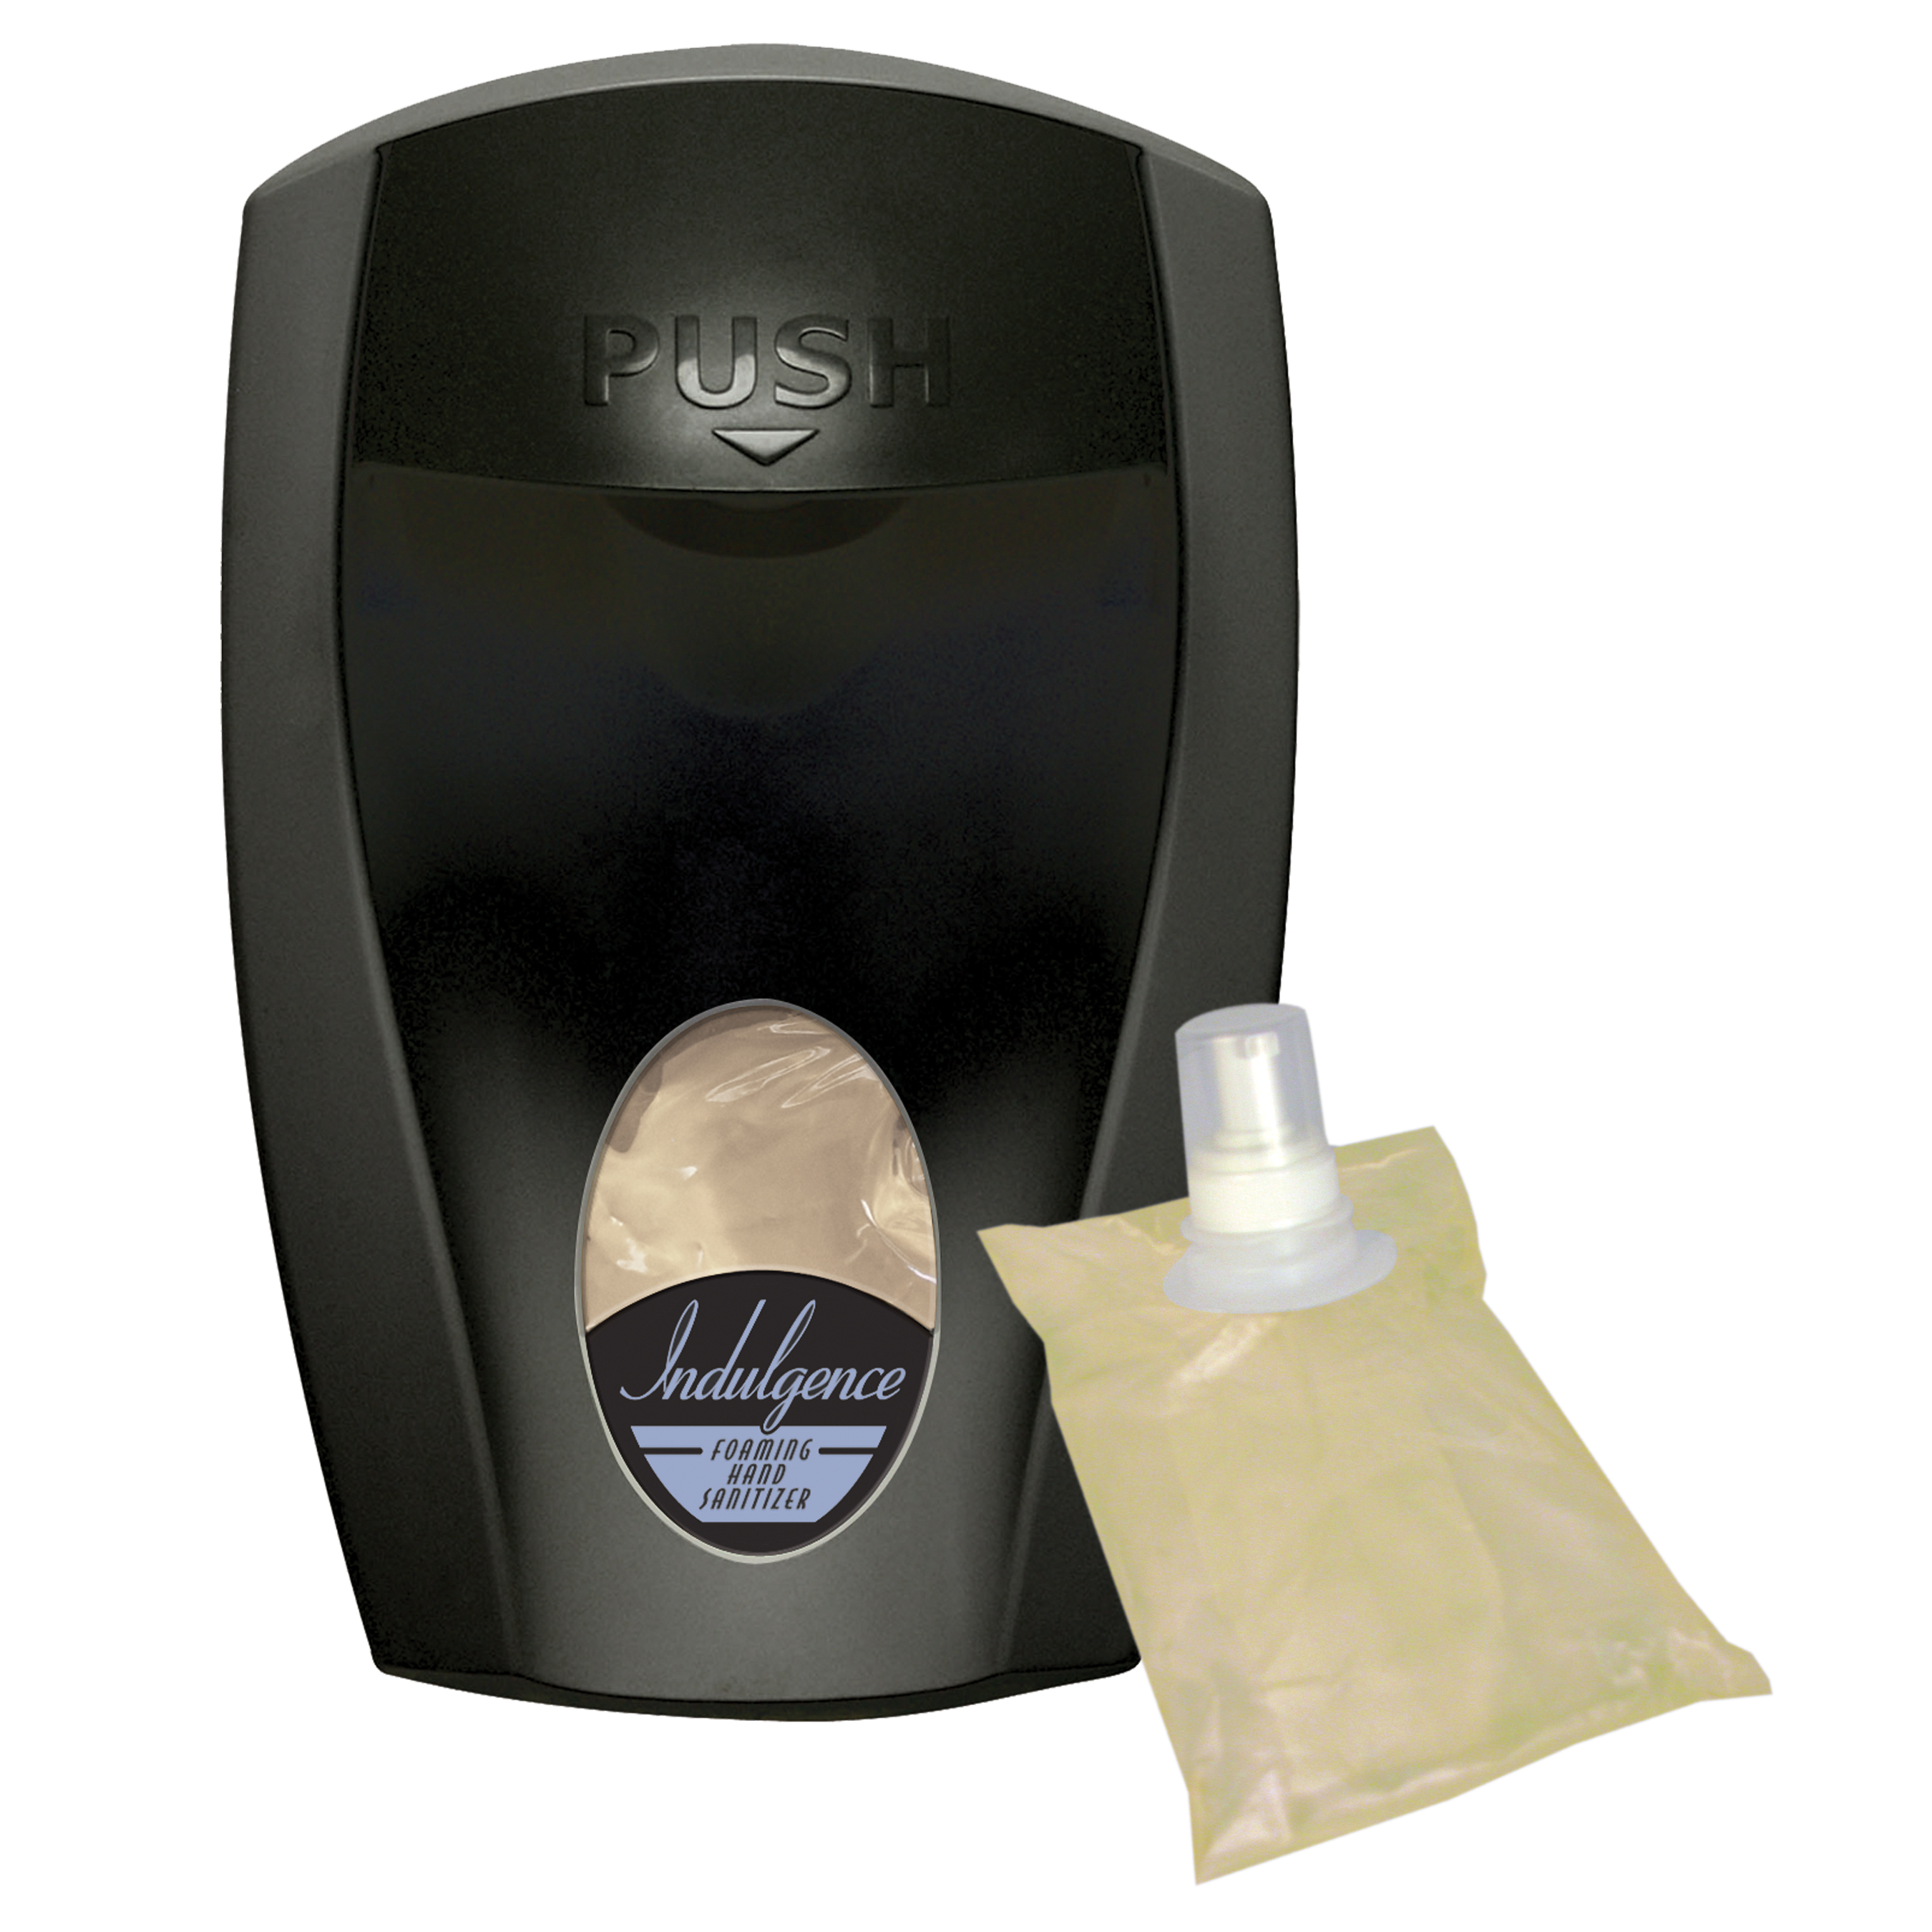 4493341_INDULGENCE_FOAMING_HAND_SANITIZER_1000ML_DISPENSER_BAG